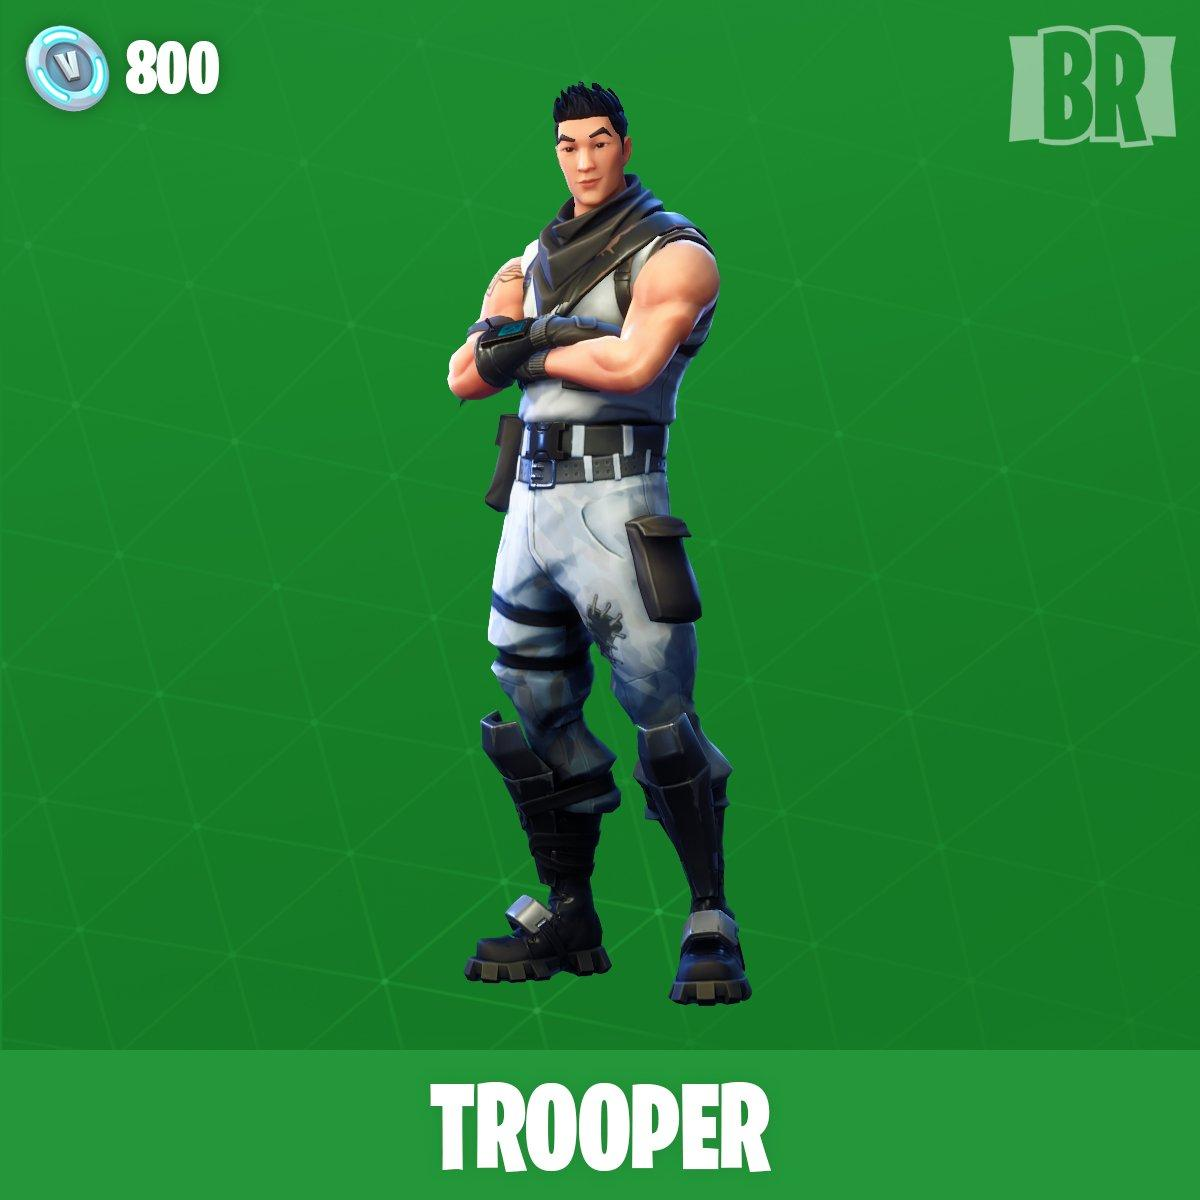 Trooper Fortnite wallpapers